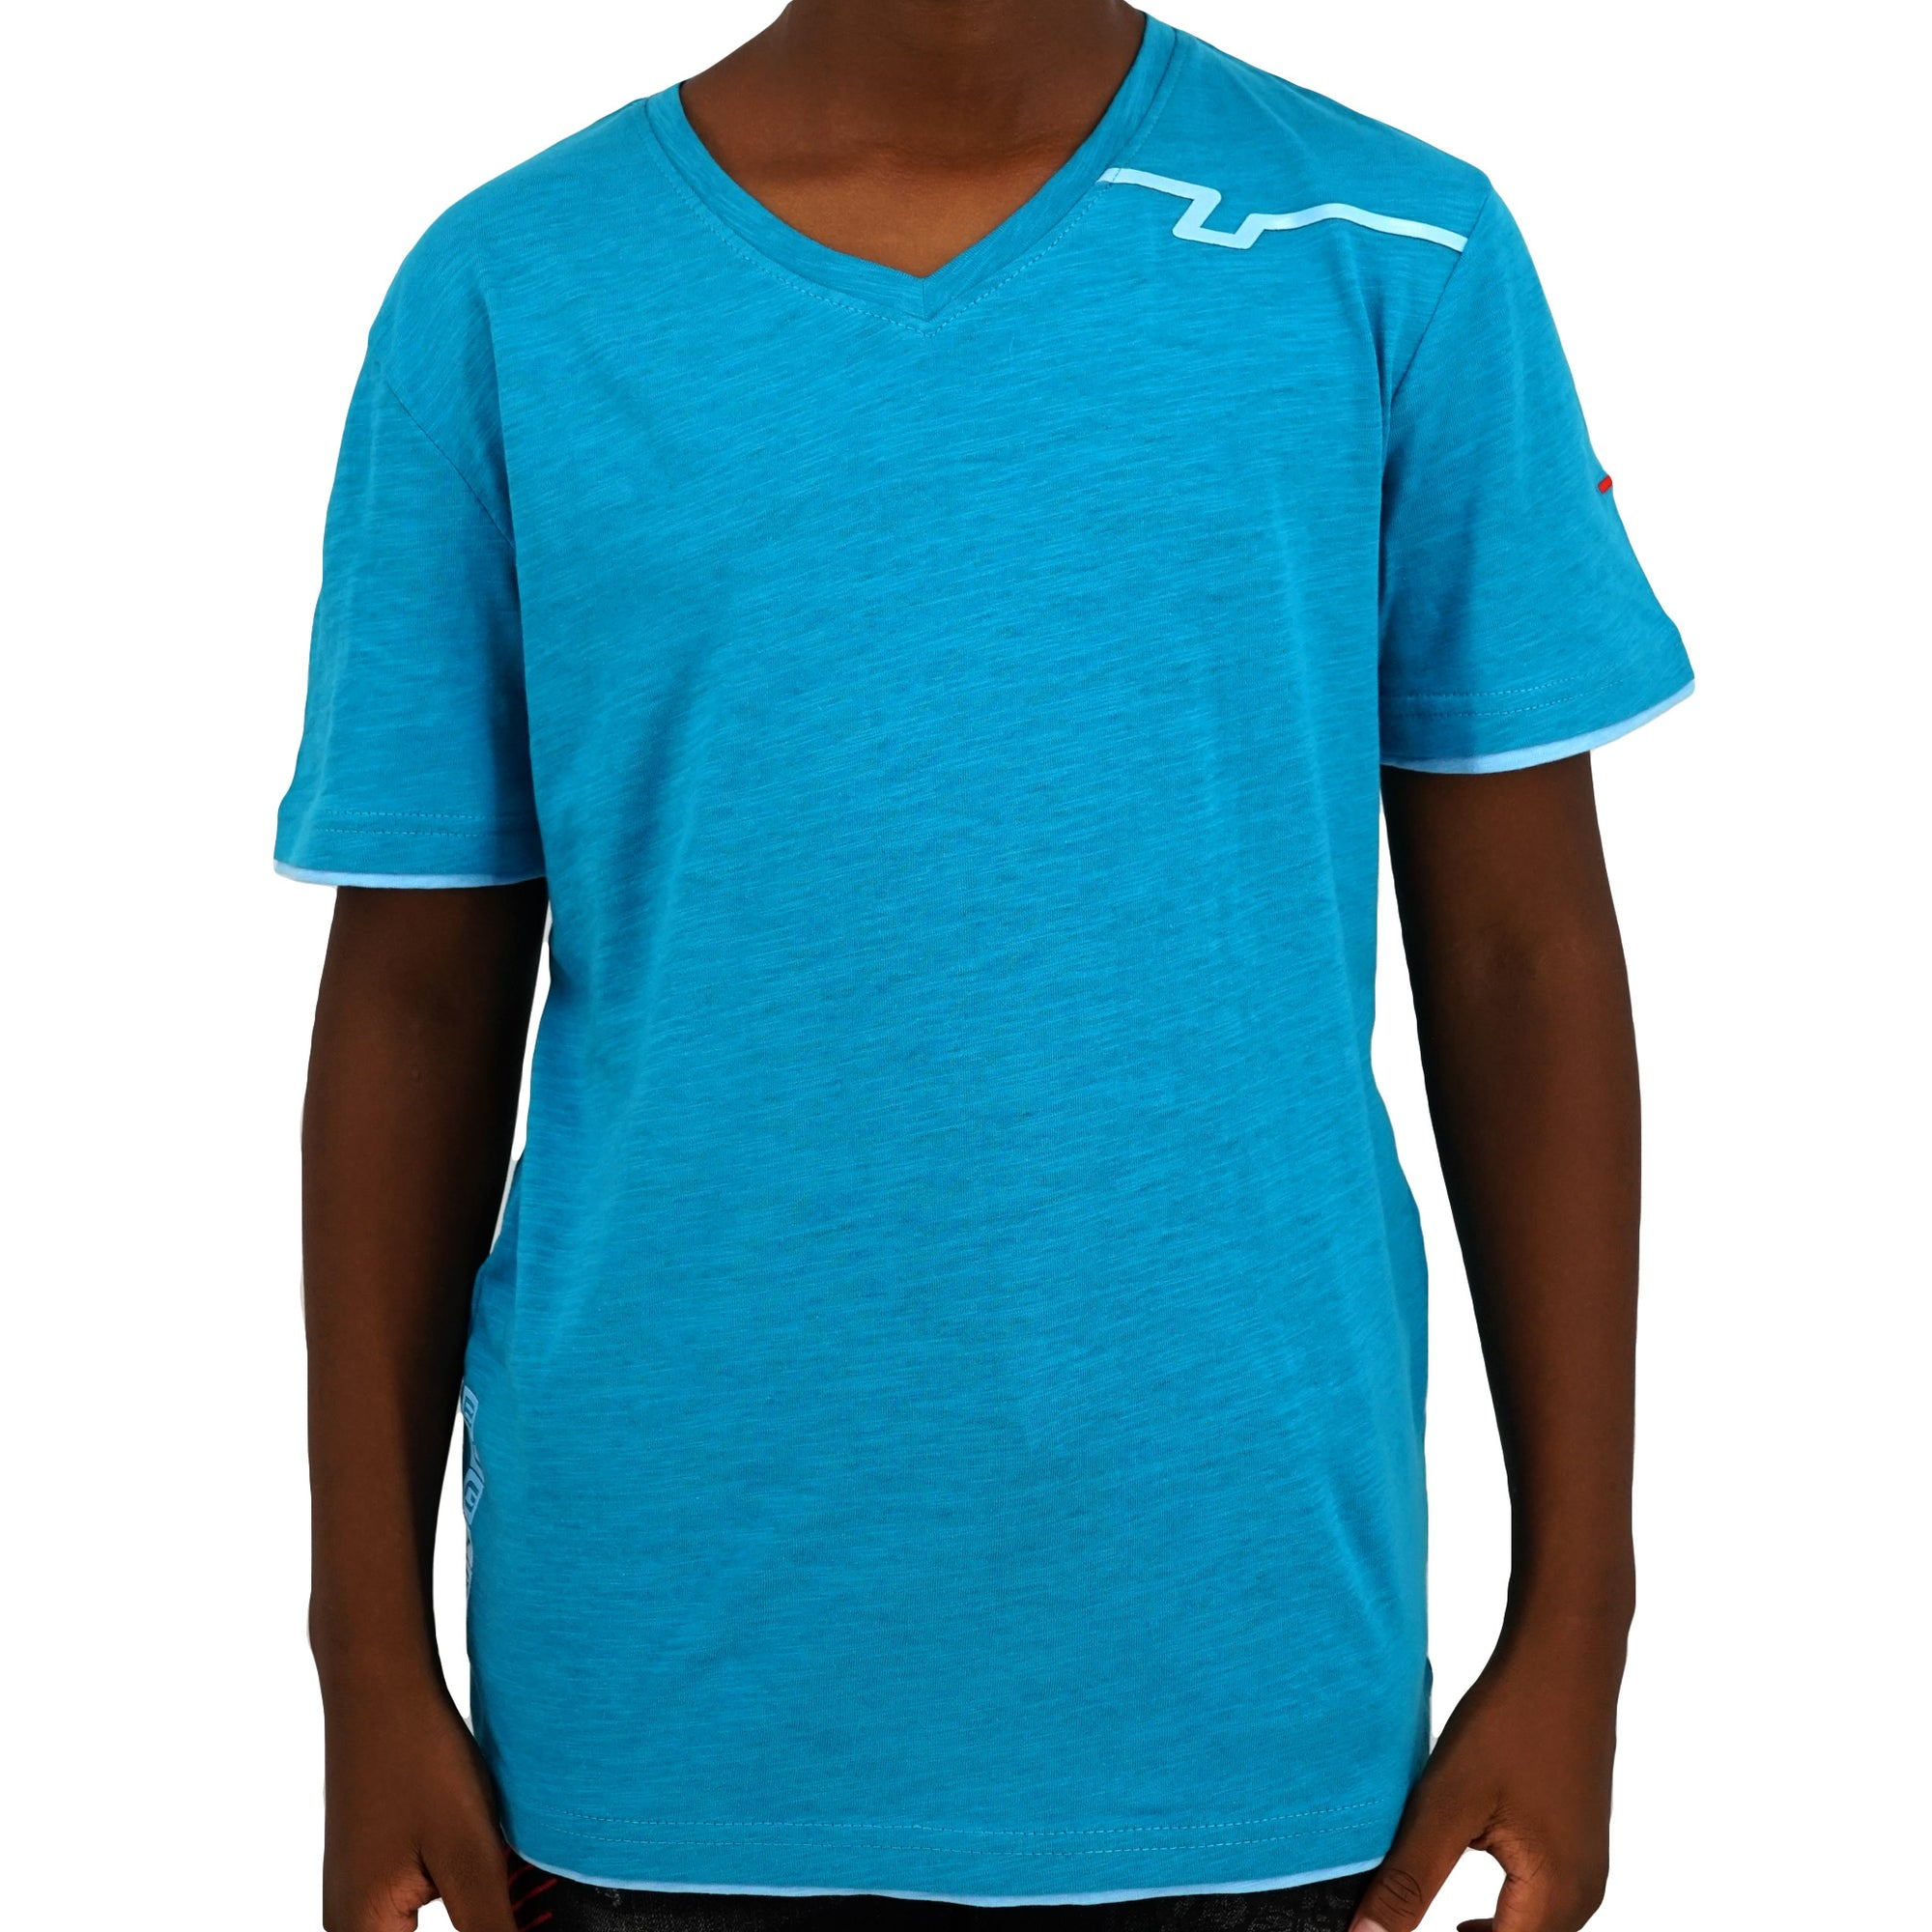 Signature V-Neck Cotton T-Shirt